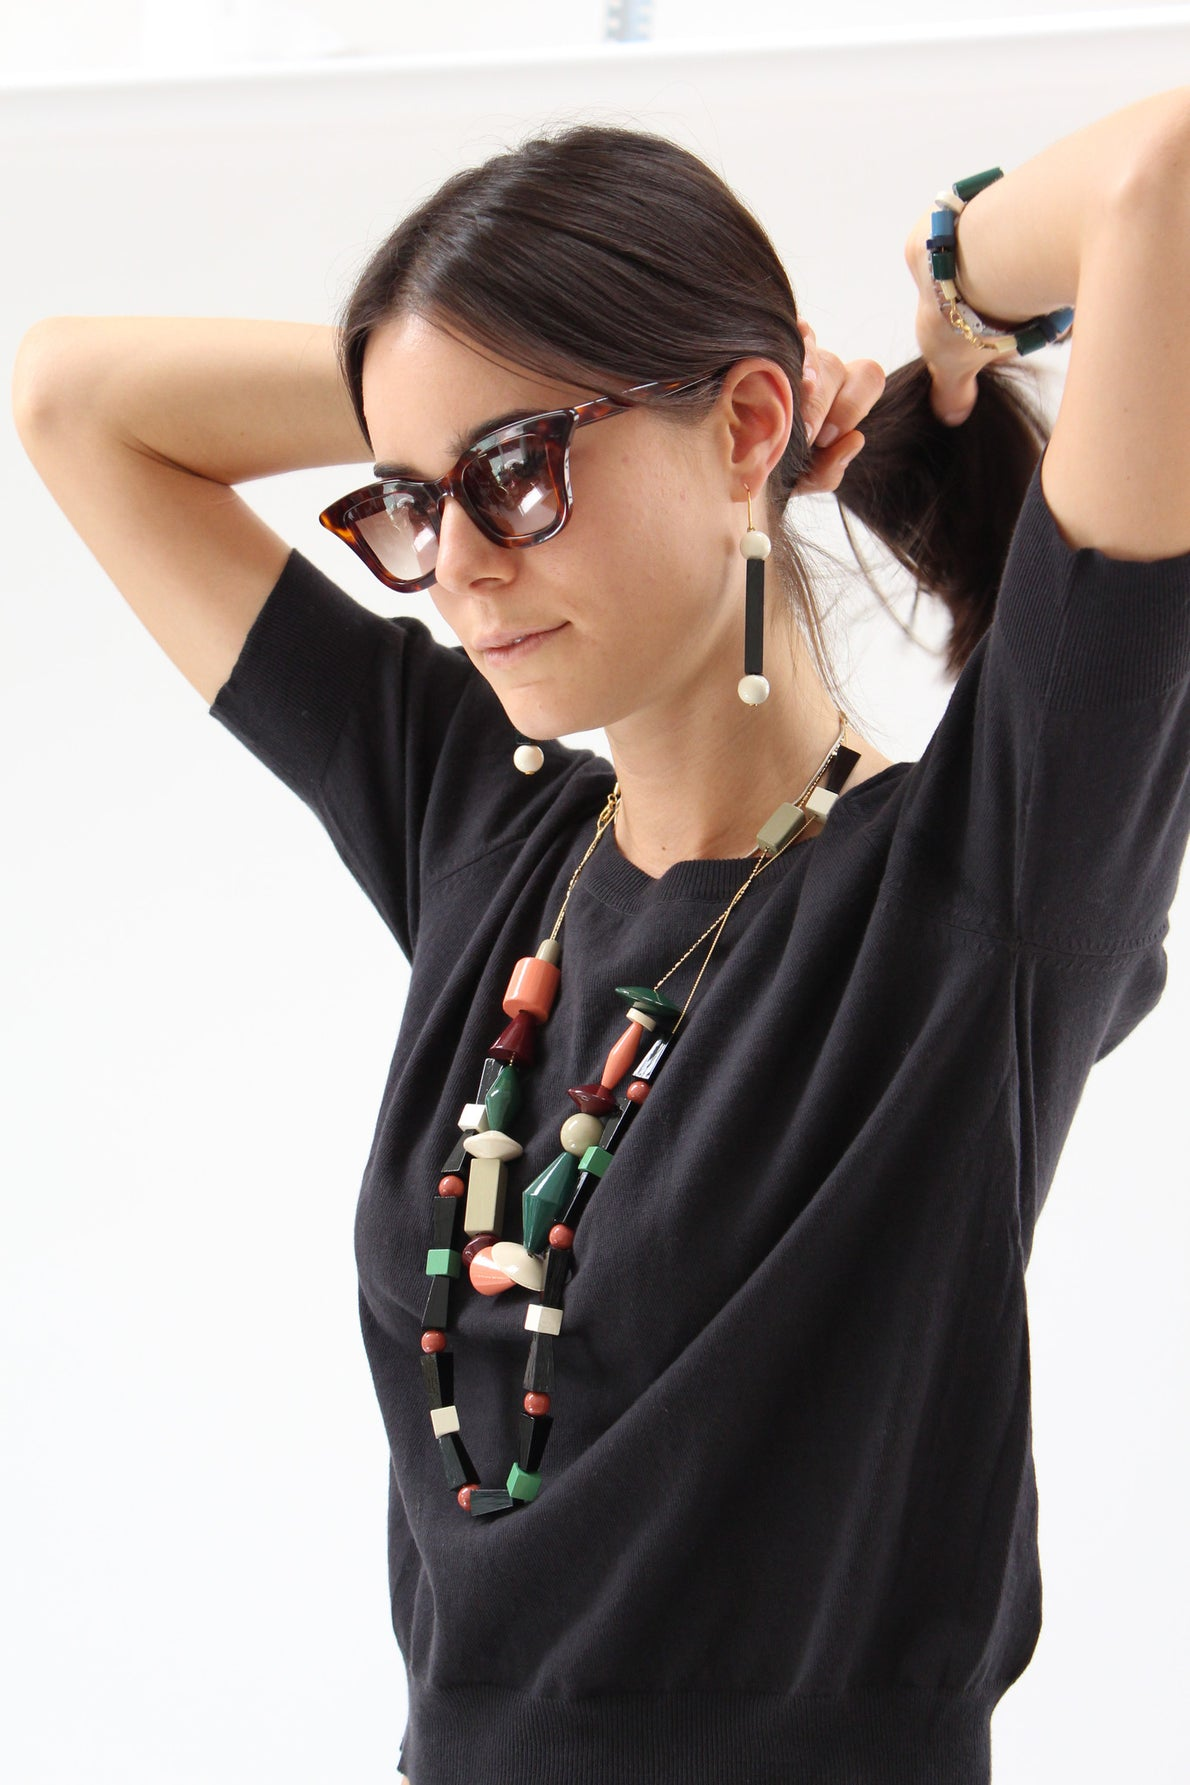 Apres Ski Wooden Necklace Esprit / Beklina